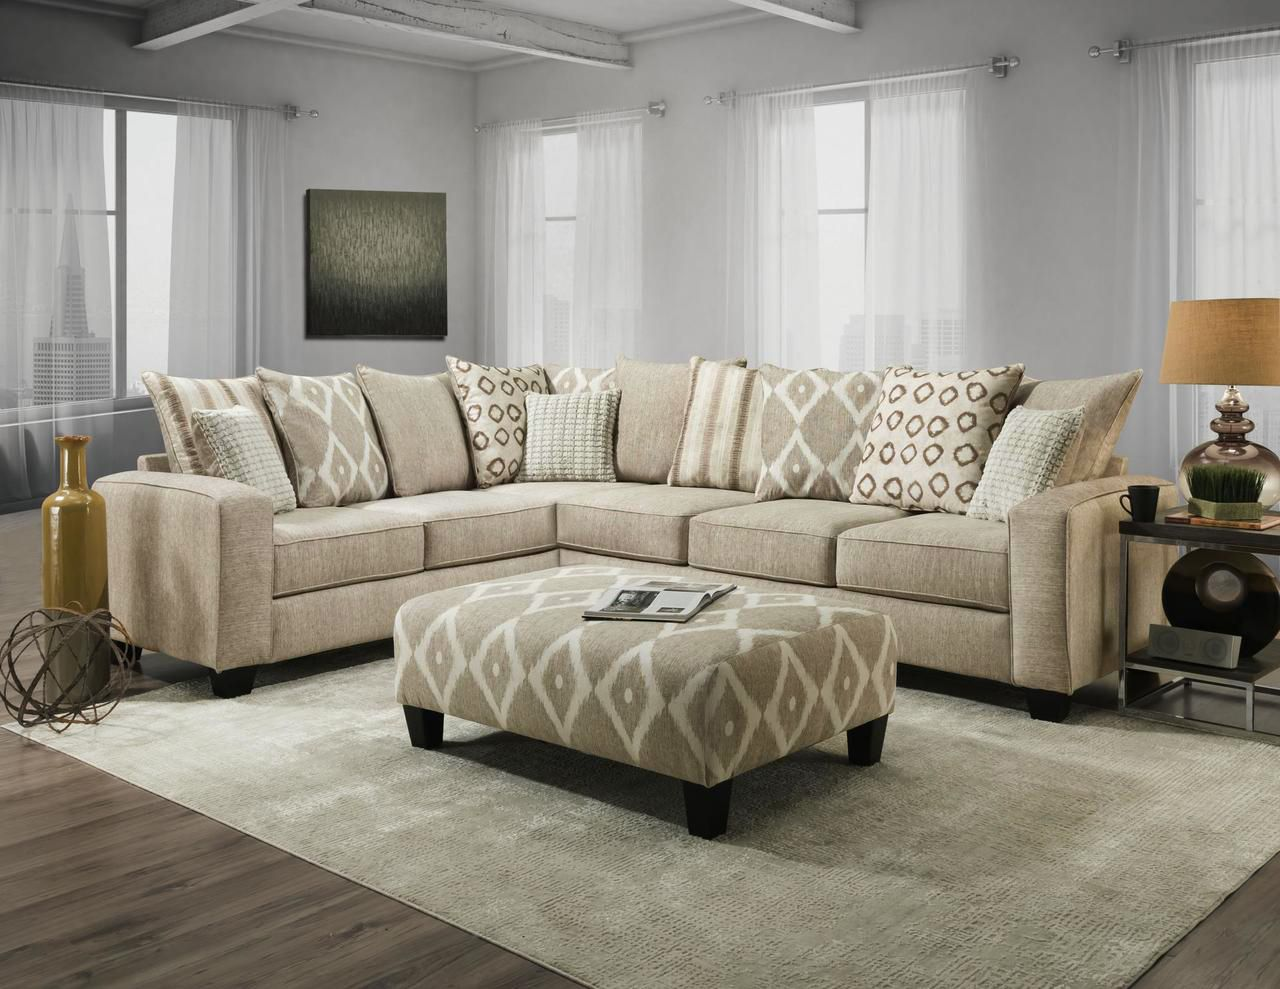 Albany Stonewash Flax Sectional Sofa In 2020 Sectional Sofas Living Room Sectional Sofa Accent Pillows Living Room